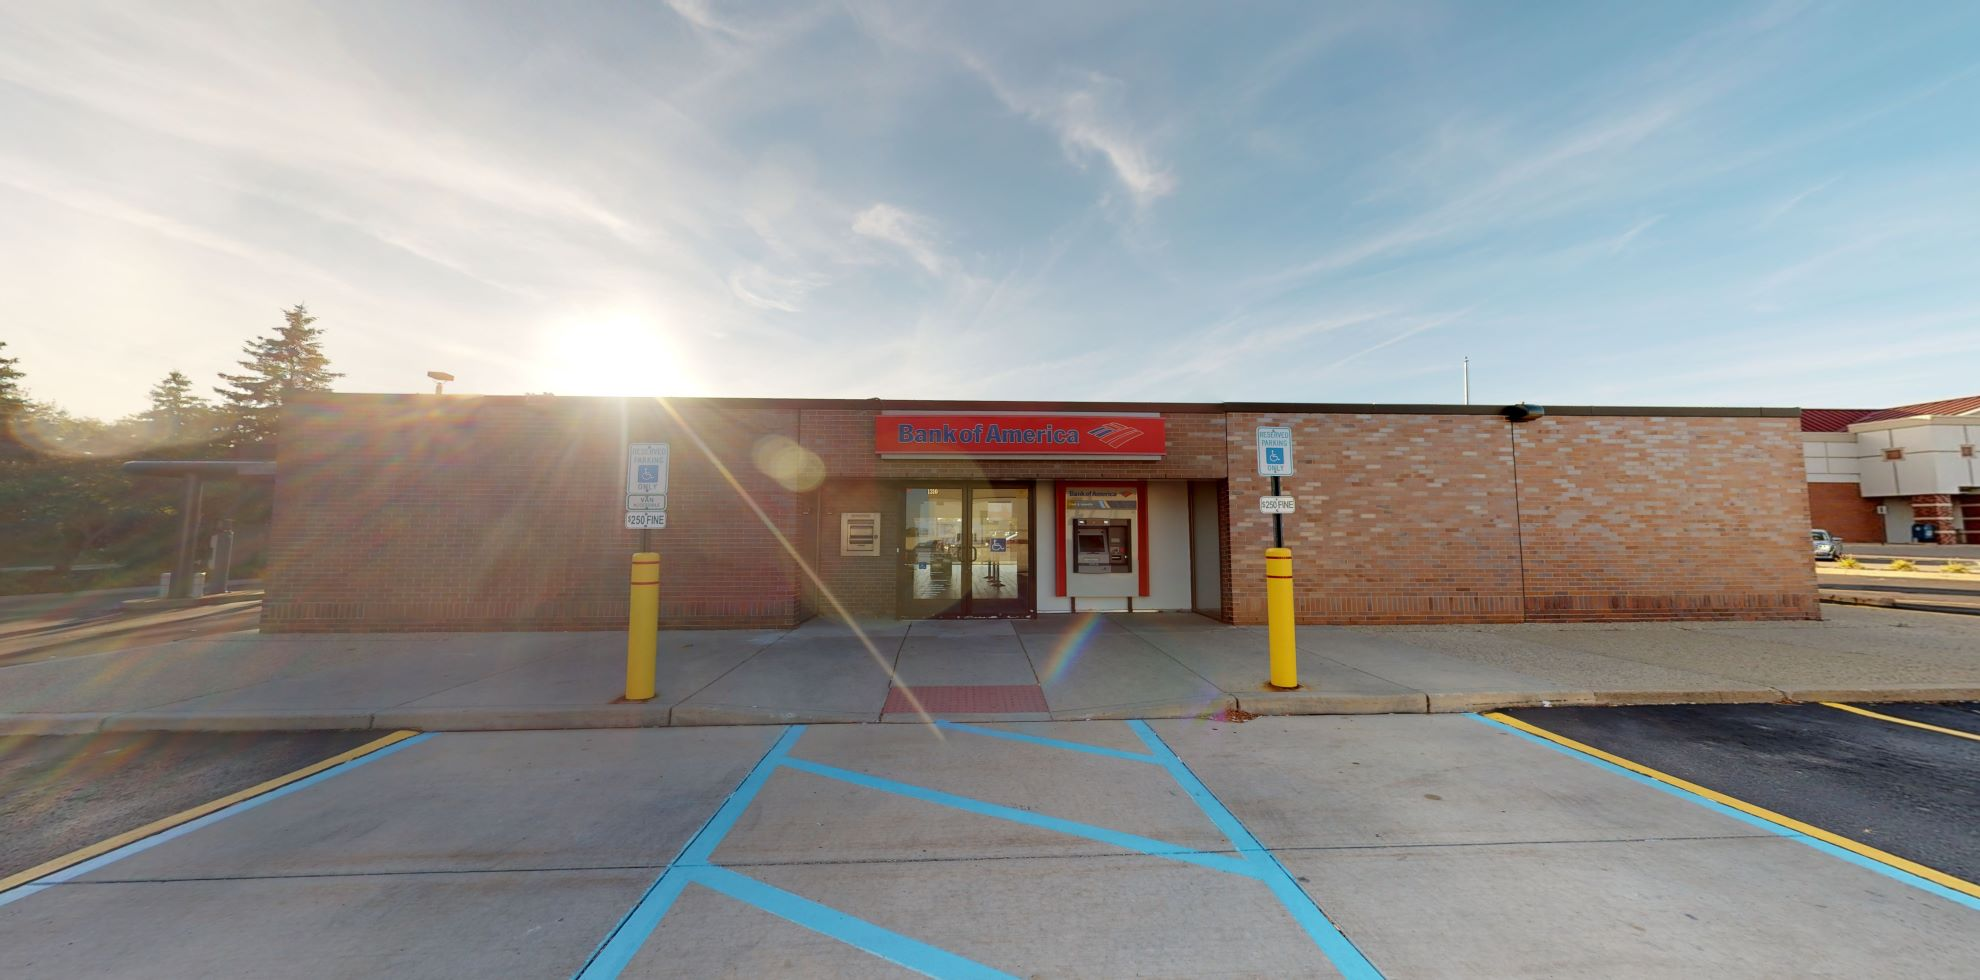 Bank of America financial center with walk-up ATM | 1310 S Rochester Rd, Rochester, MI 48307